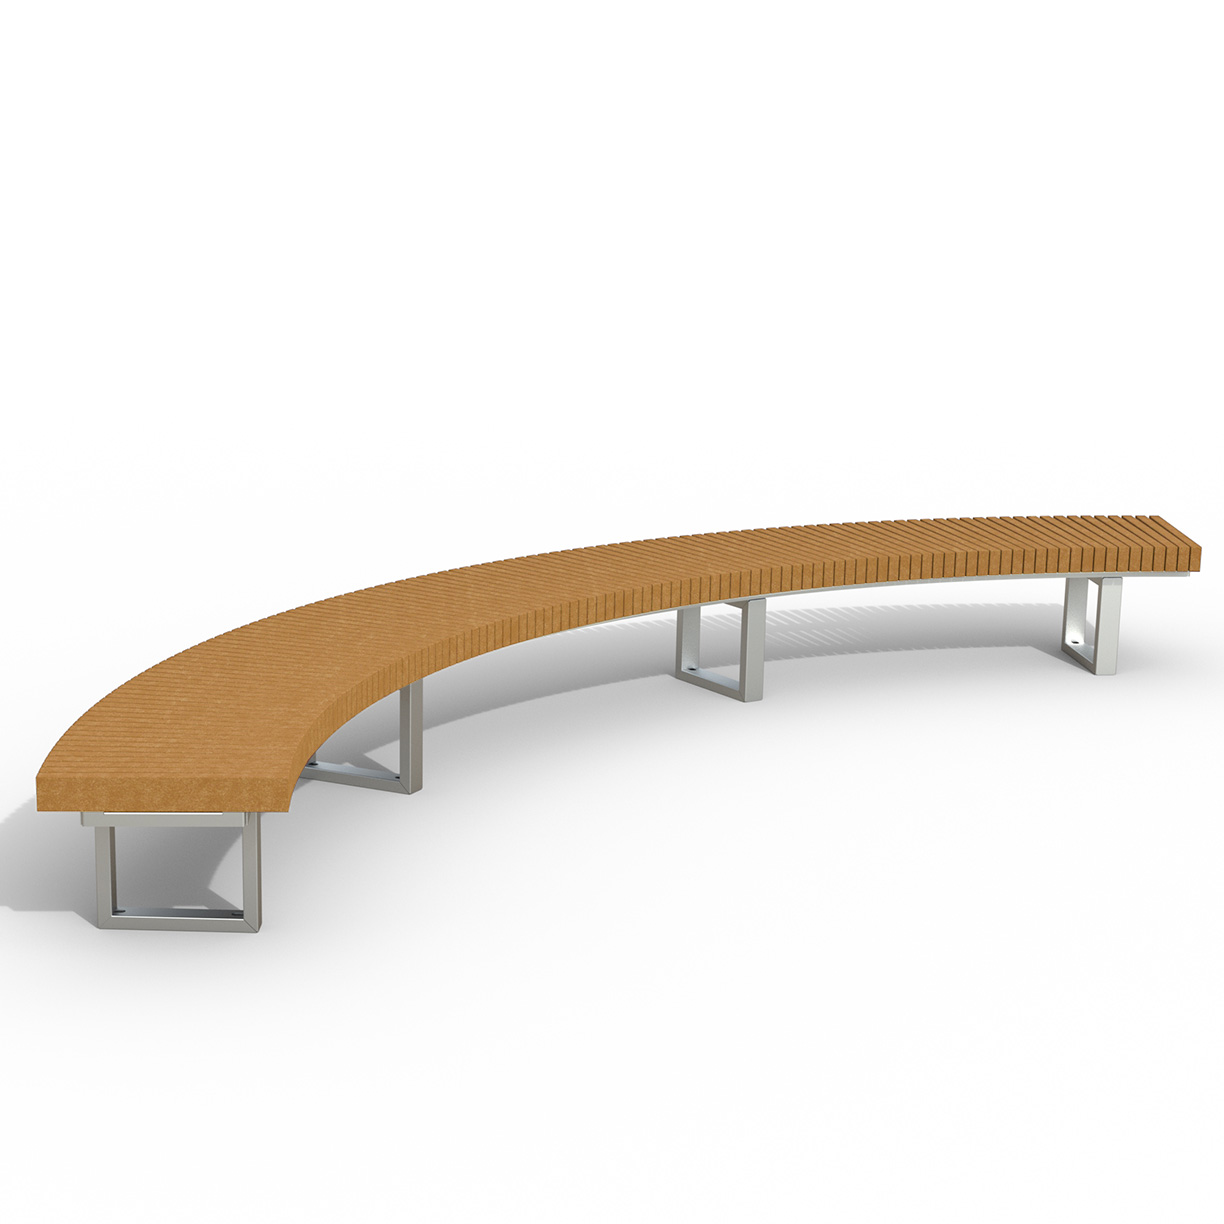 INF24C1290R  Infinity Collection 12' Radius / 90 Degree Curved Recycled Plastic Bench